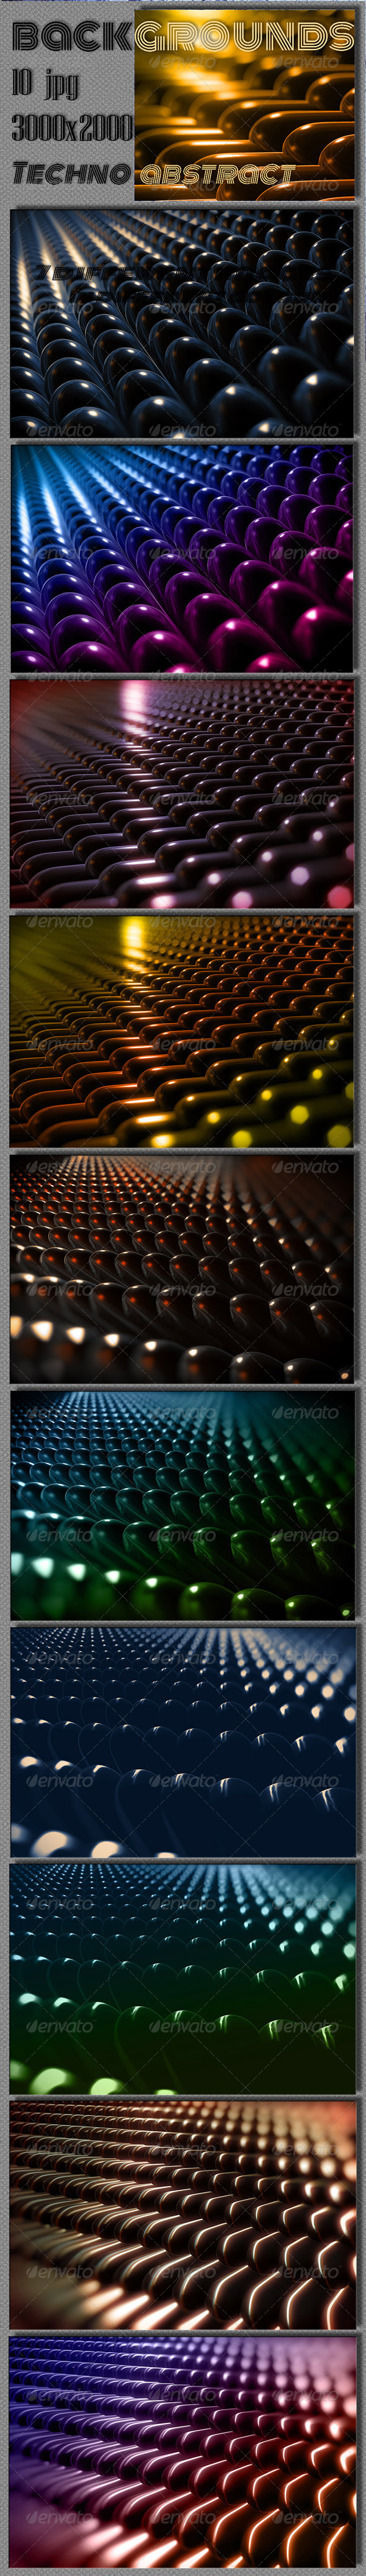 Techno 3D Capsule Backgrounds - Tech / Futuristic Backgrounds